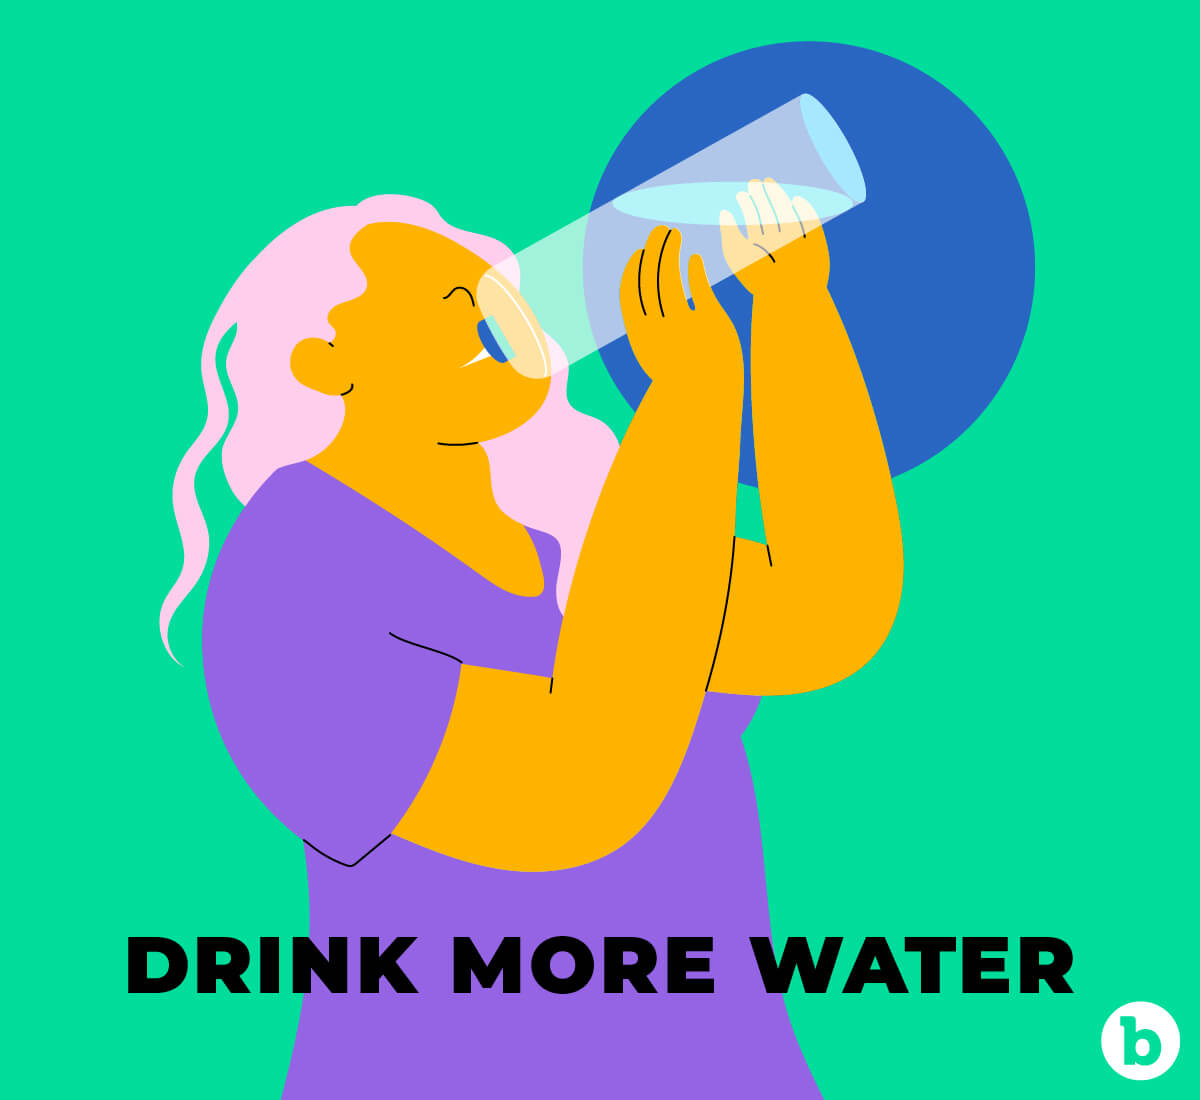 Drinking more water should be a general resolution for 2021 as well as a booty resolution